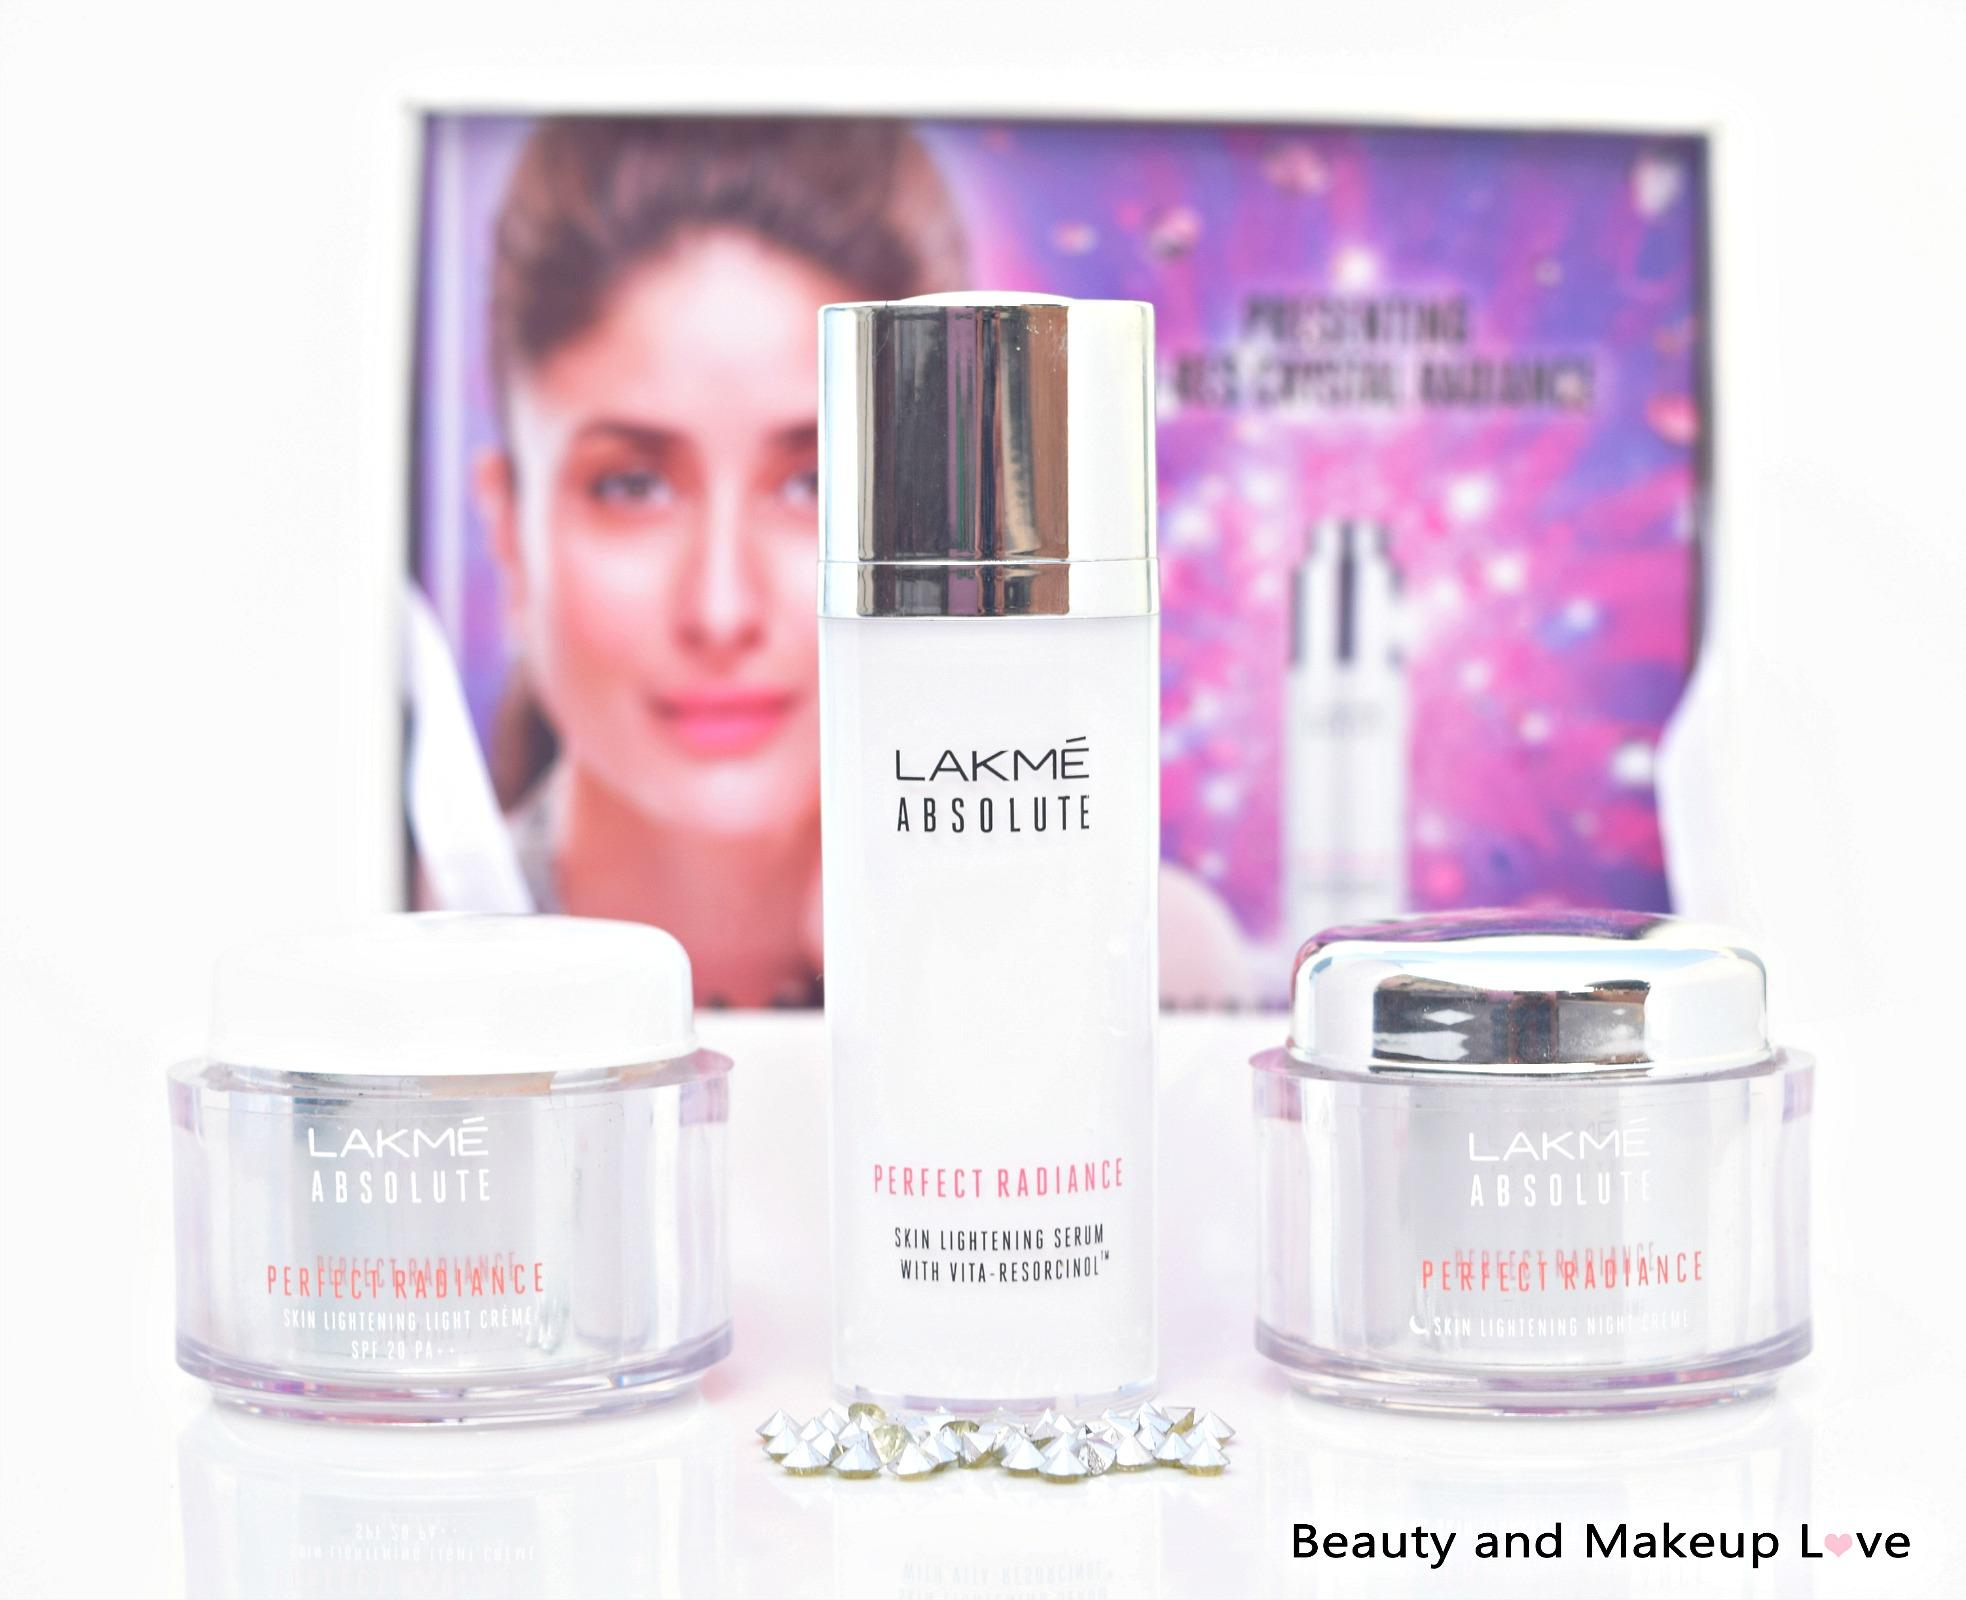 lakme absolute perfect radiance range serum light. Black Bedroom Furniture Sets. Home Design Ideas